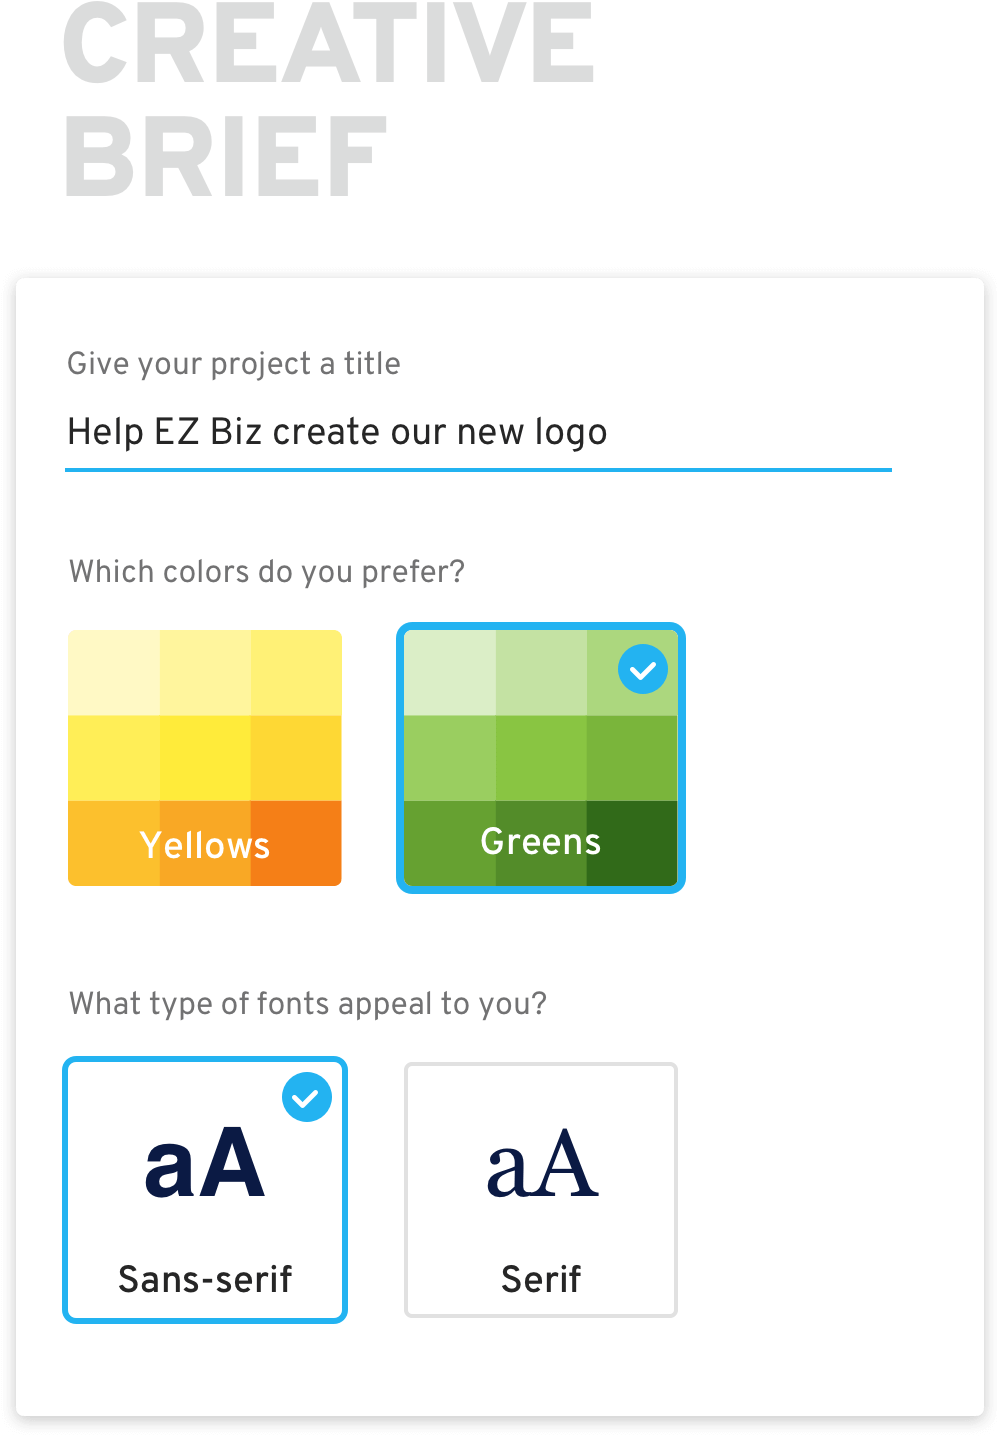 first step of how crowdspring works is writing the creative brief